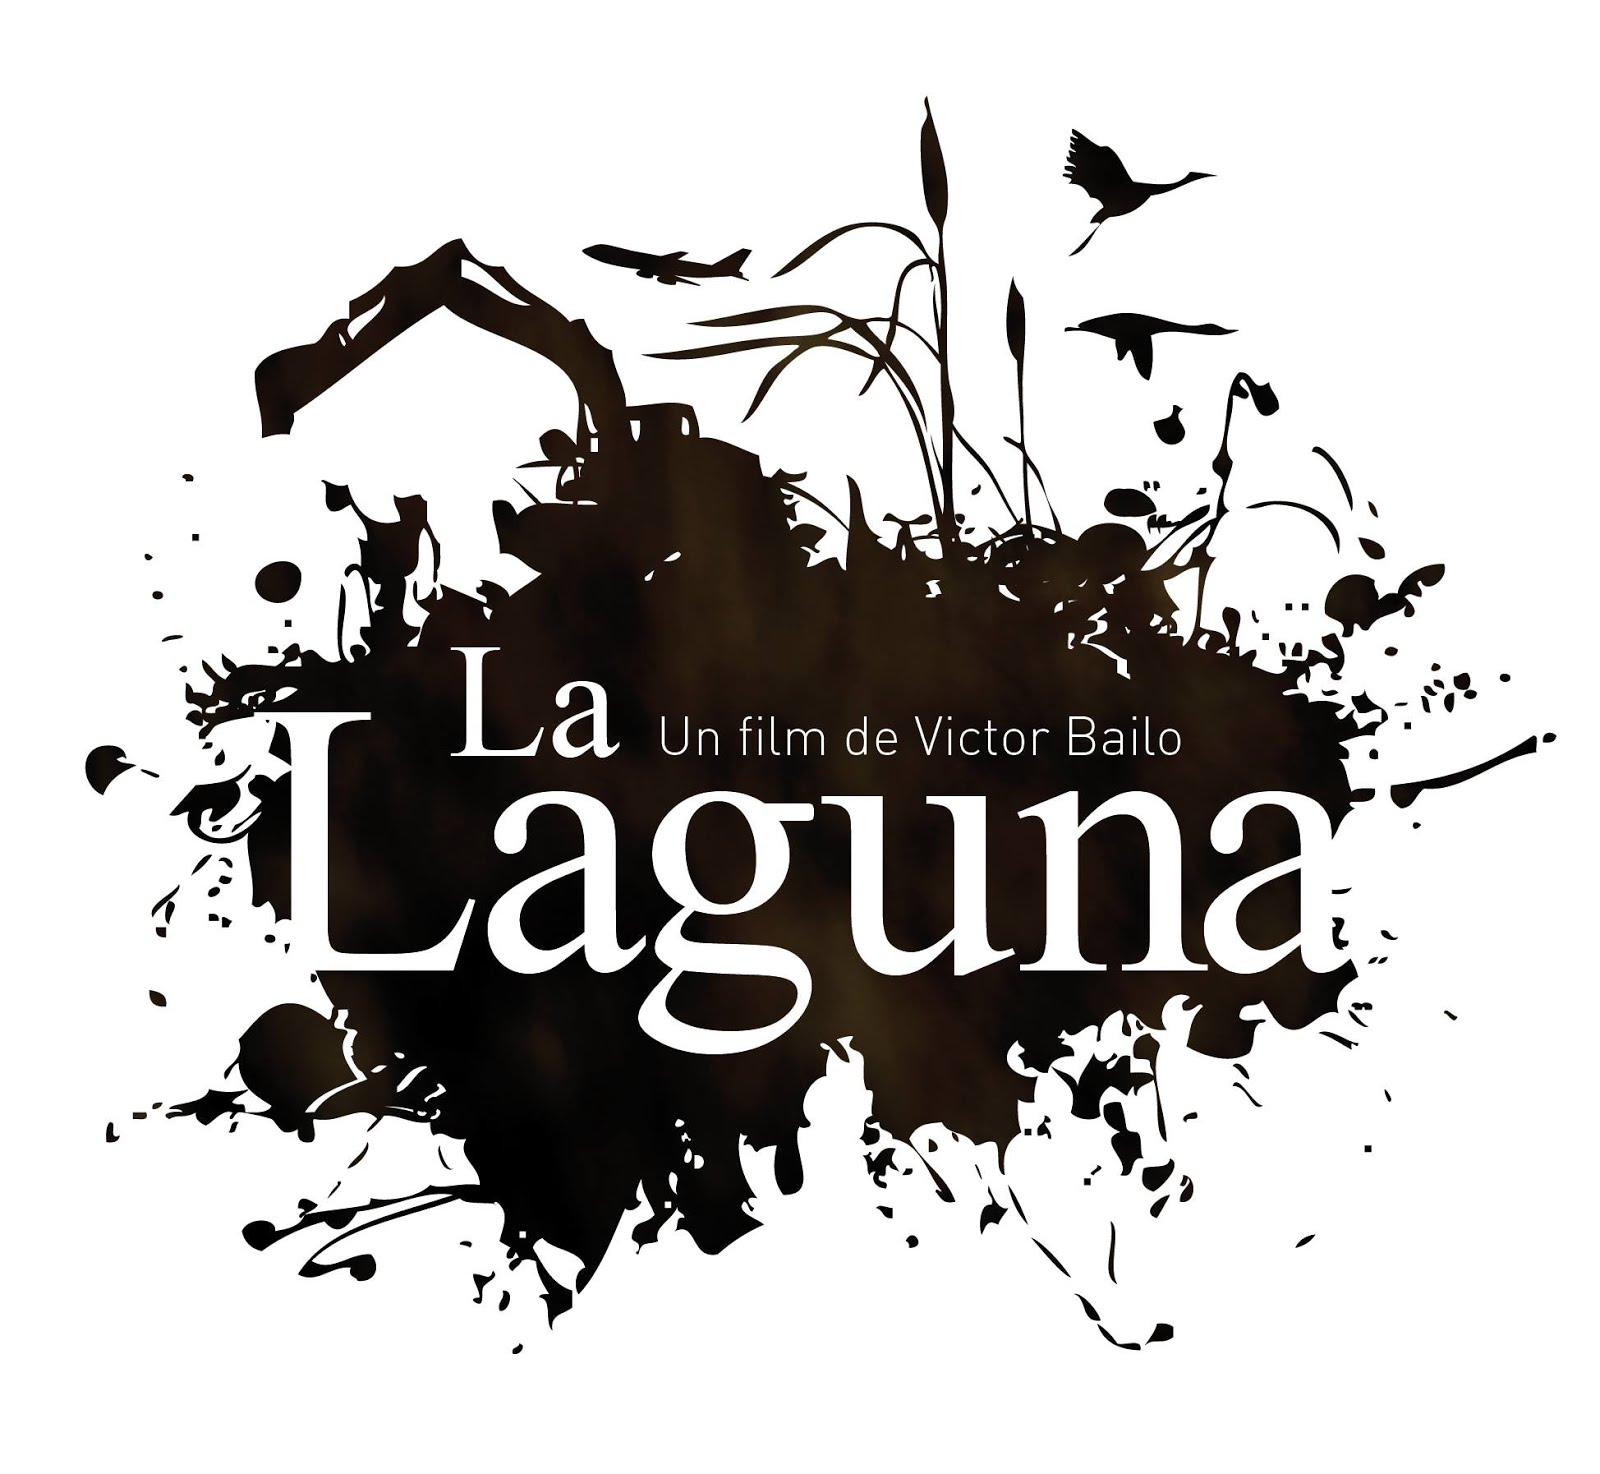 La Laguna Documental